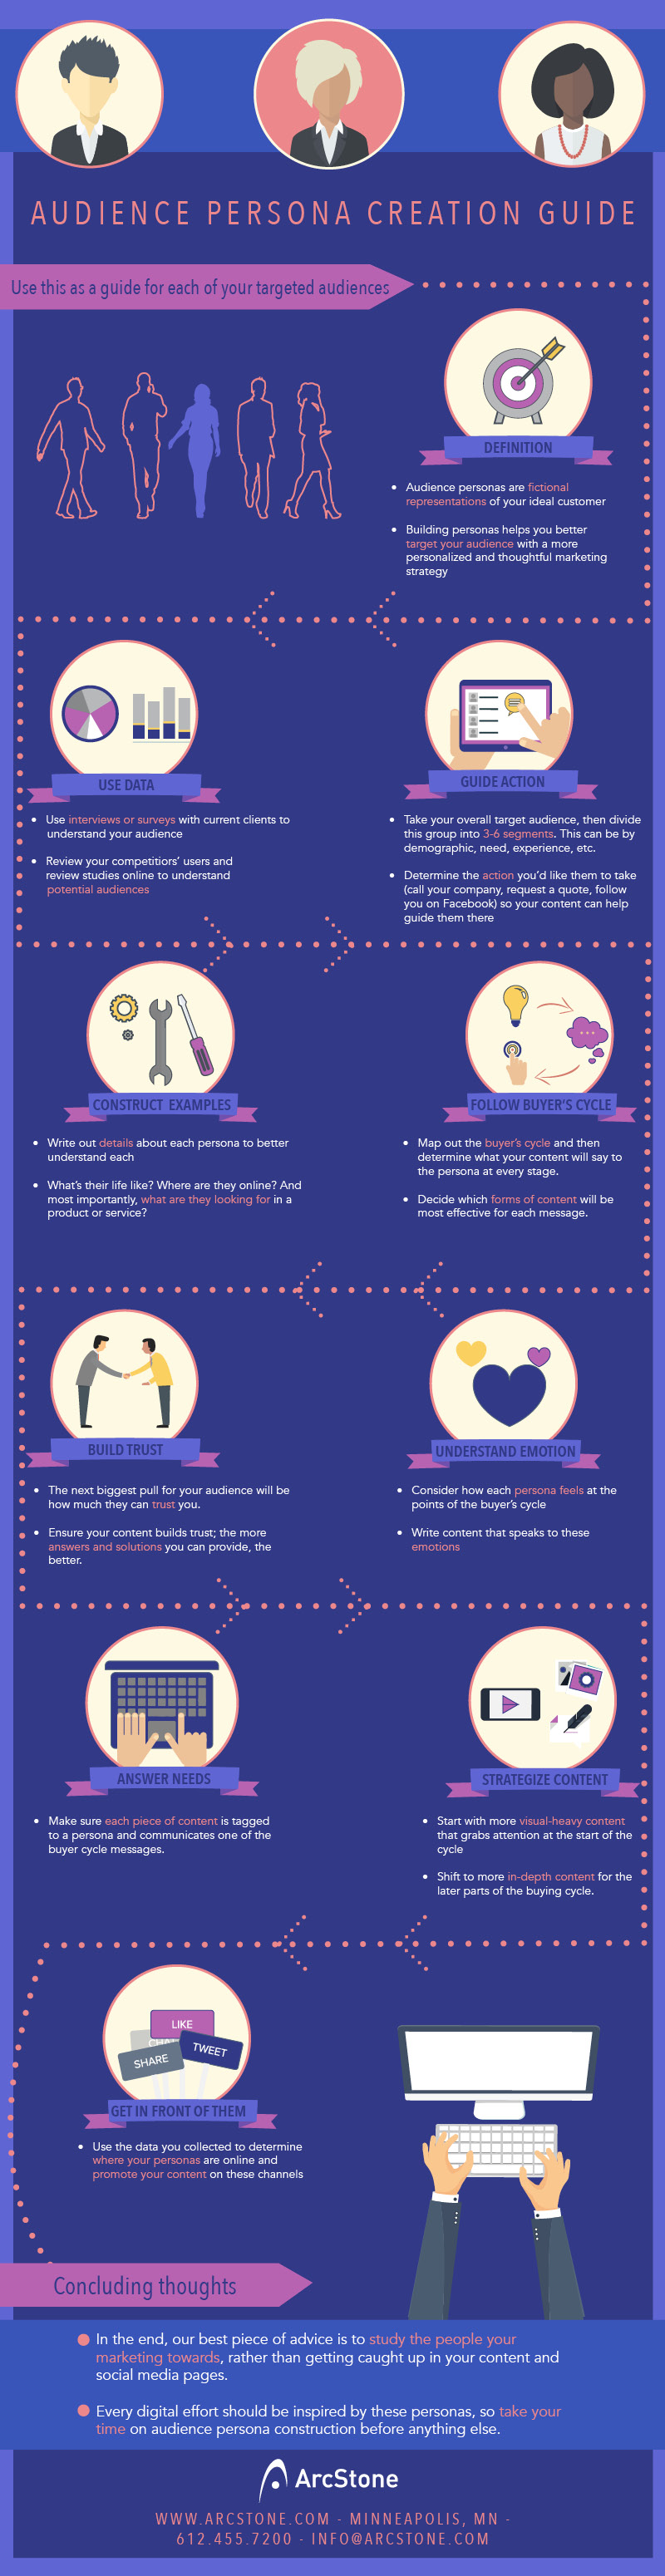 Audience persona creation guide infographic